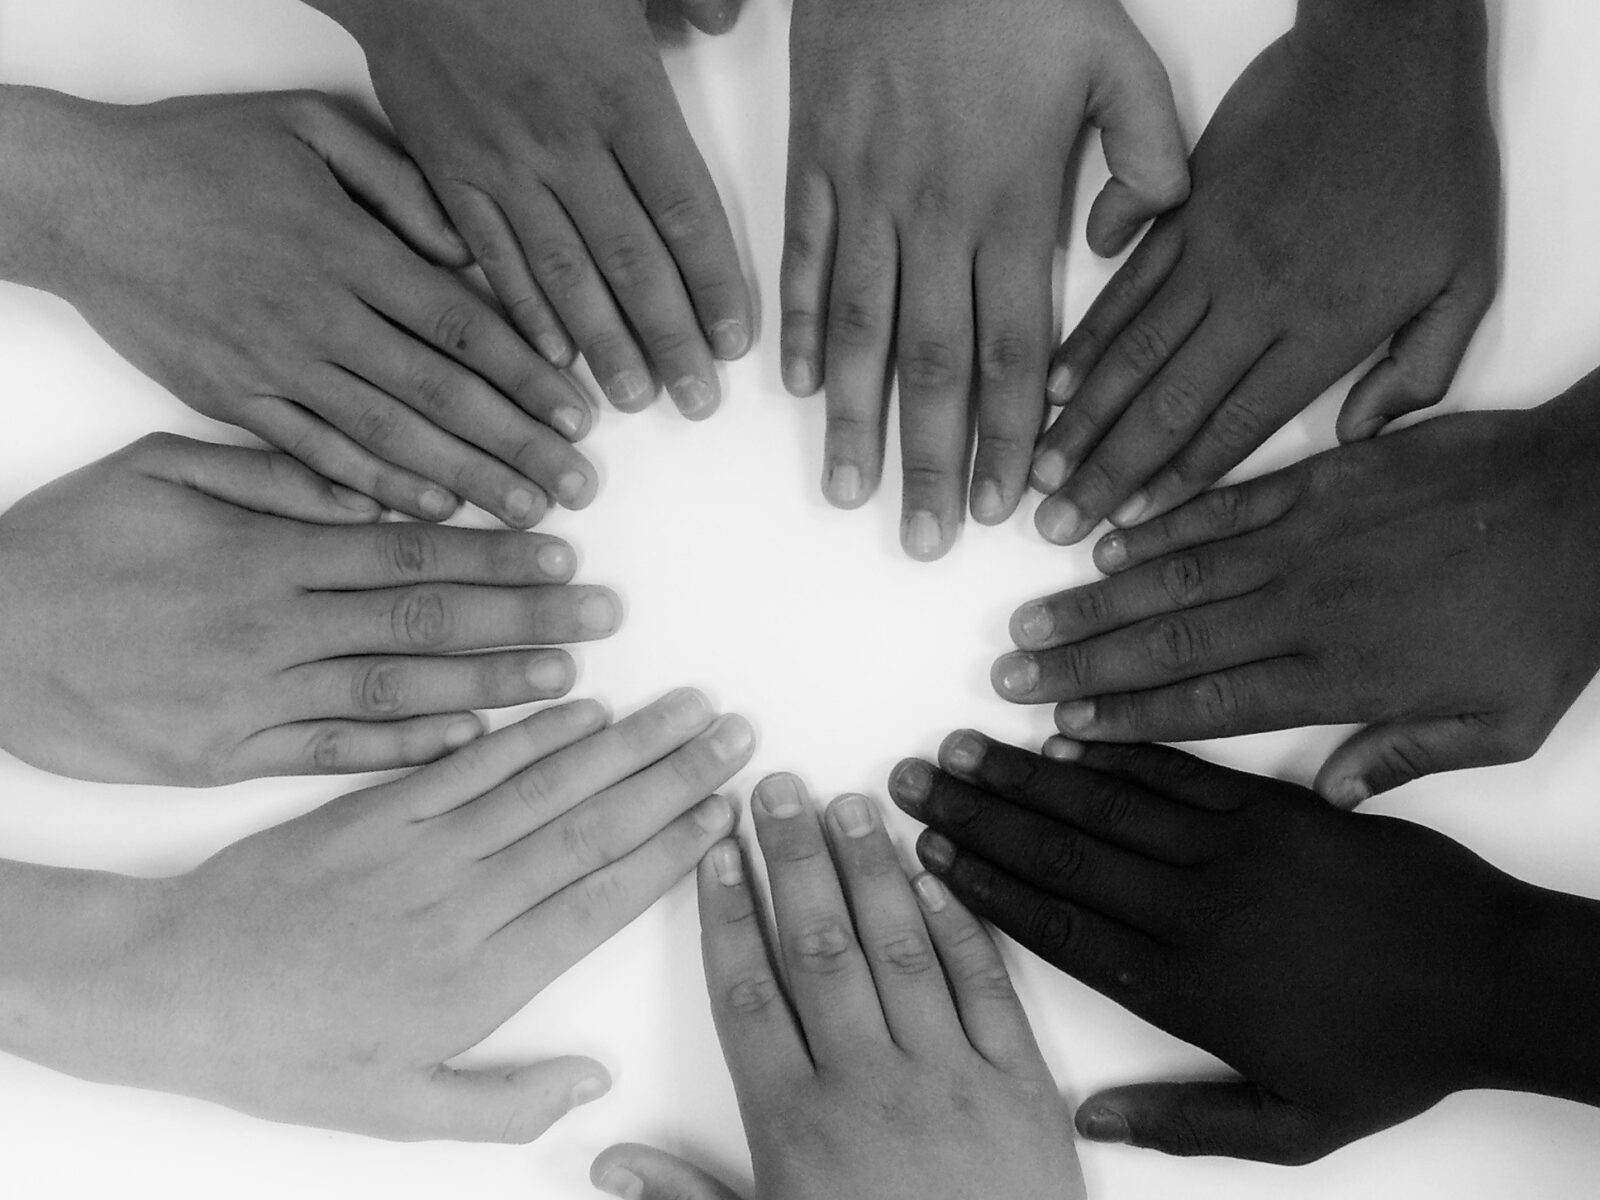 Volunteering, voluntouring, volunteering hands, world peace, hands, united, united nations, colours, circle of hands, black and white, , px